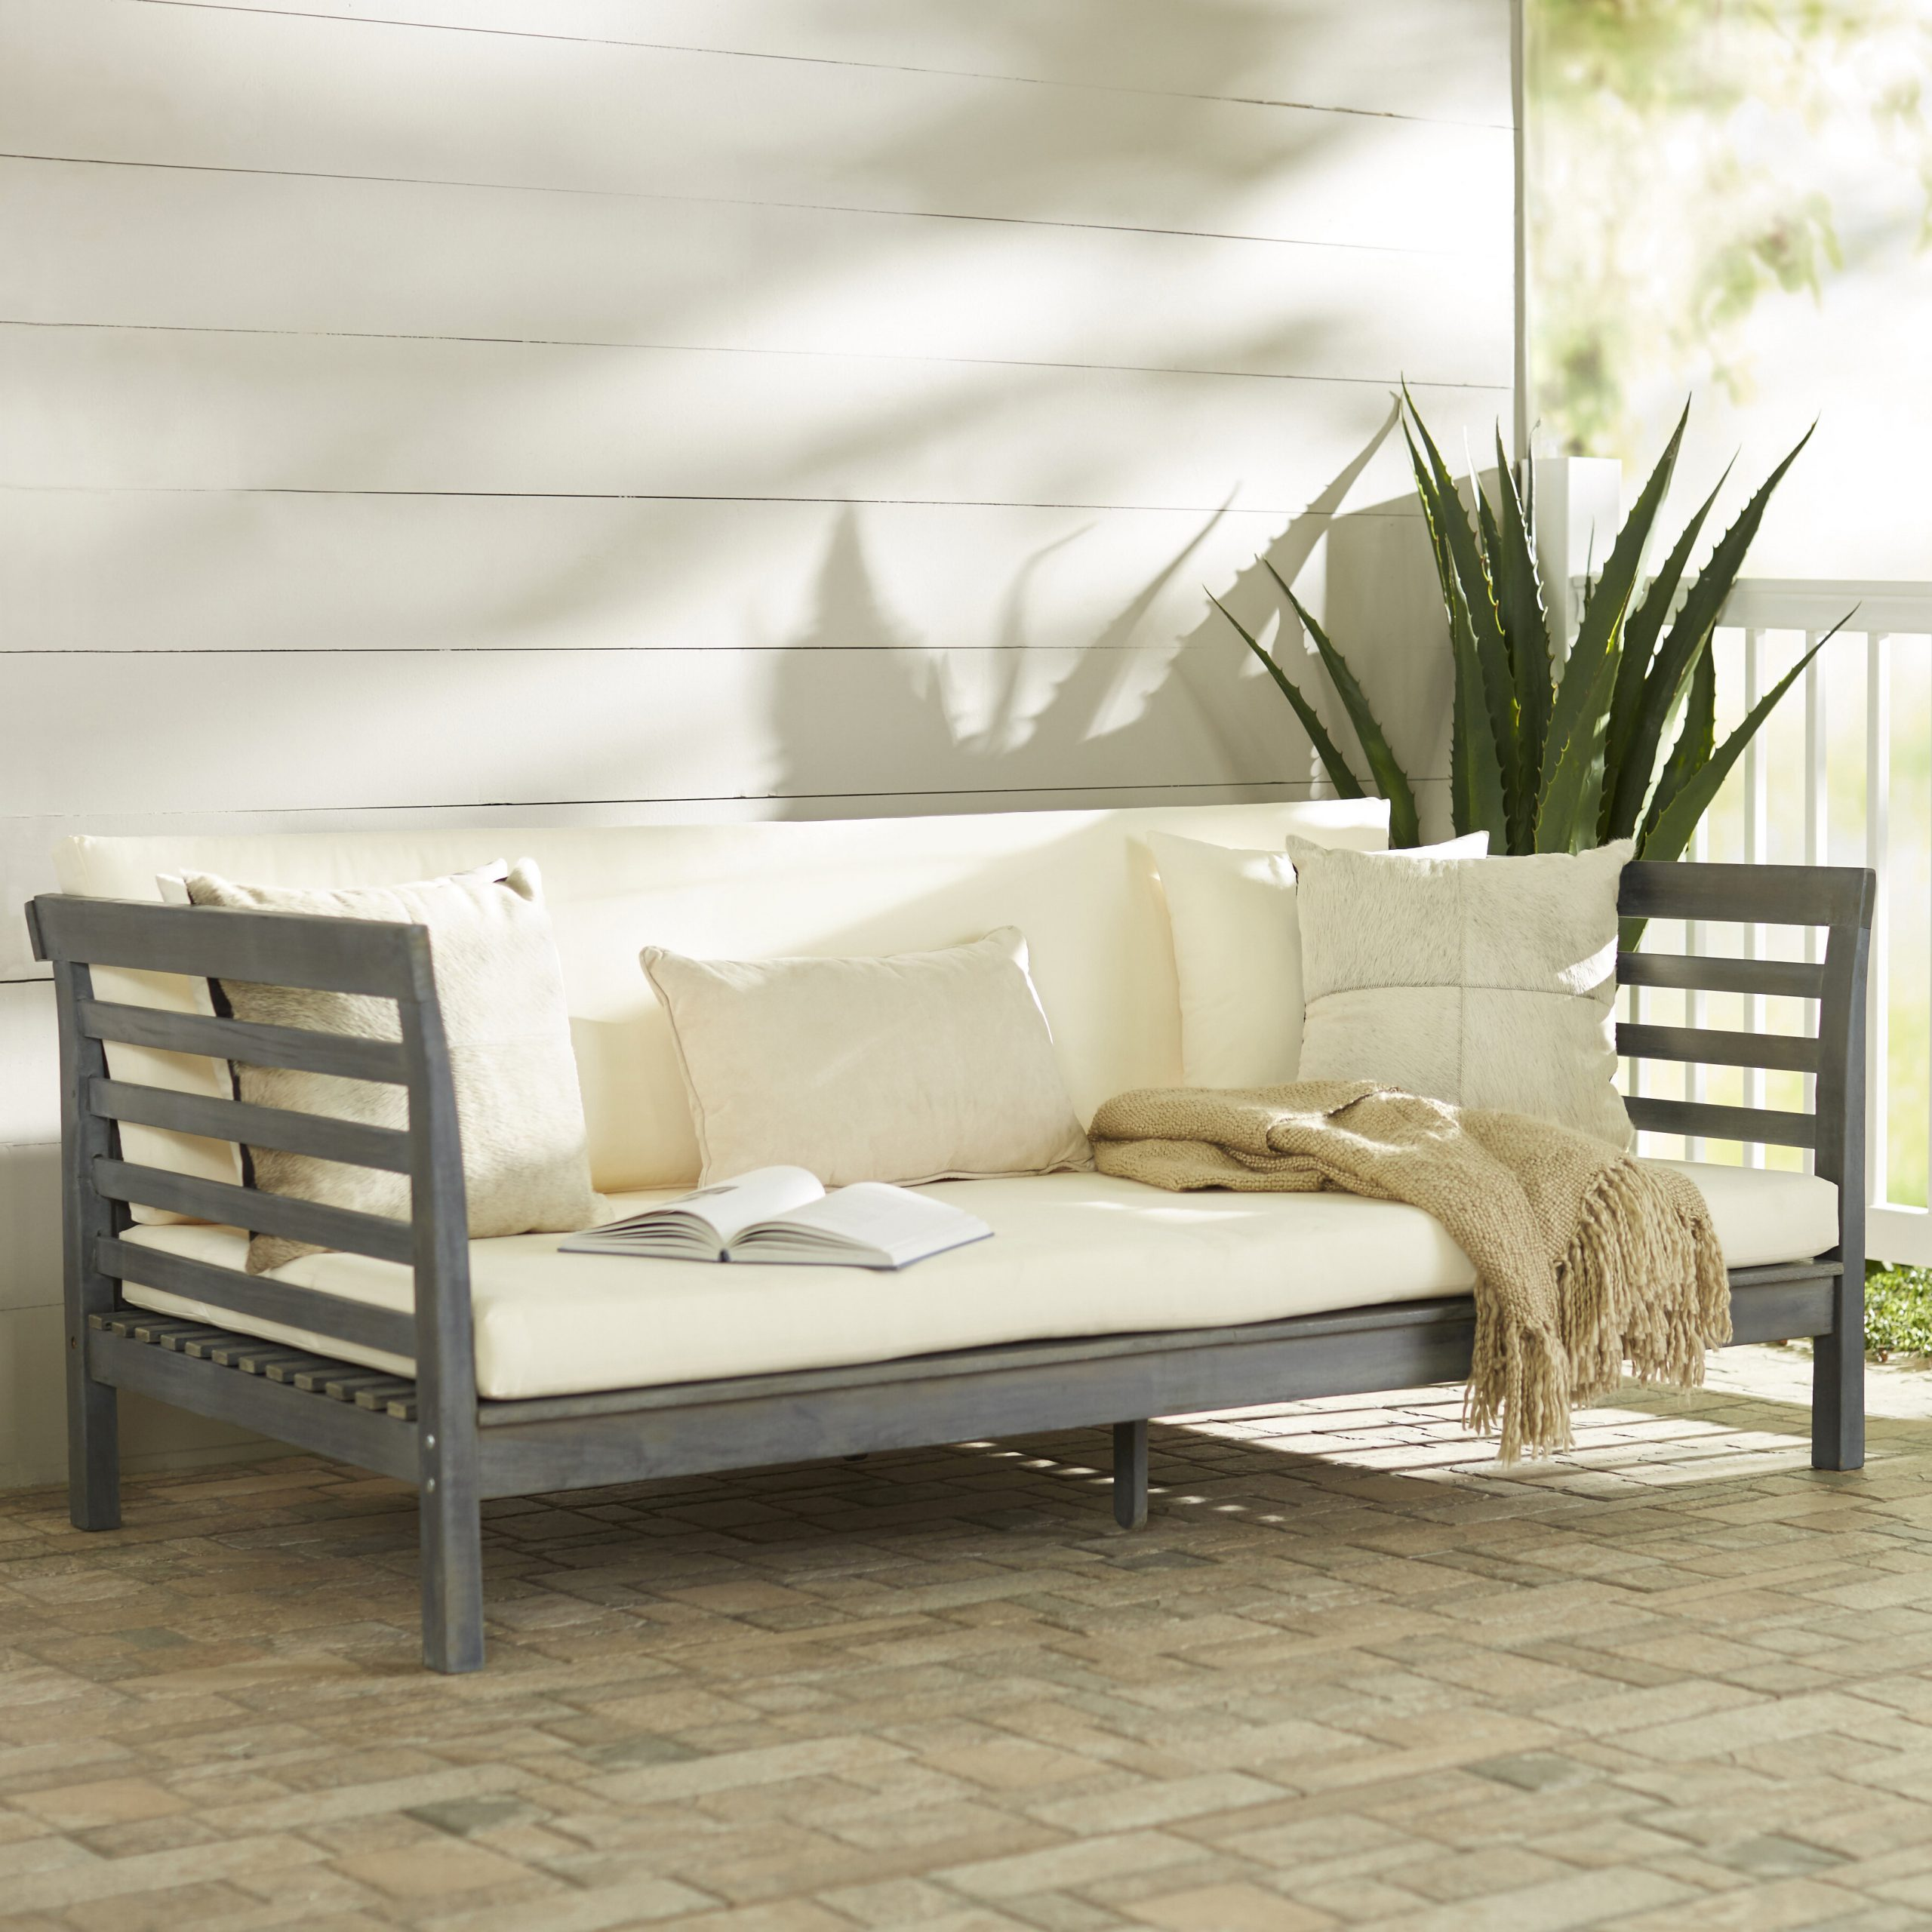 Bodine Patio Daybed With Cushions Within Well Liked Bodine Patio Daybeds With Cushions (Gallery 1 of 25)